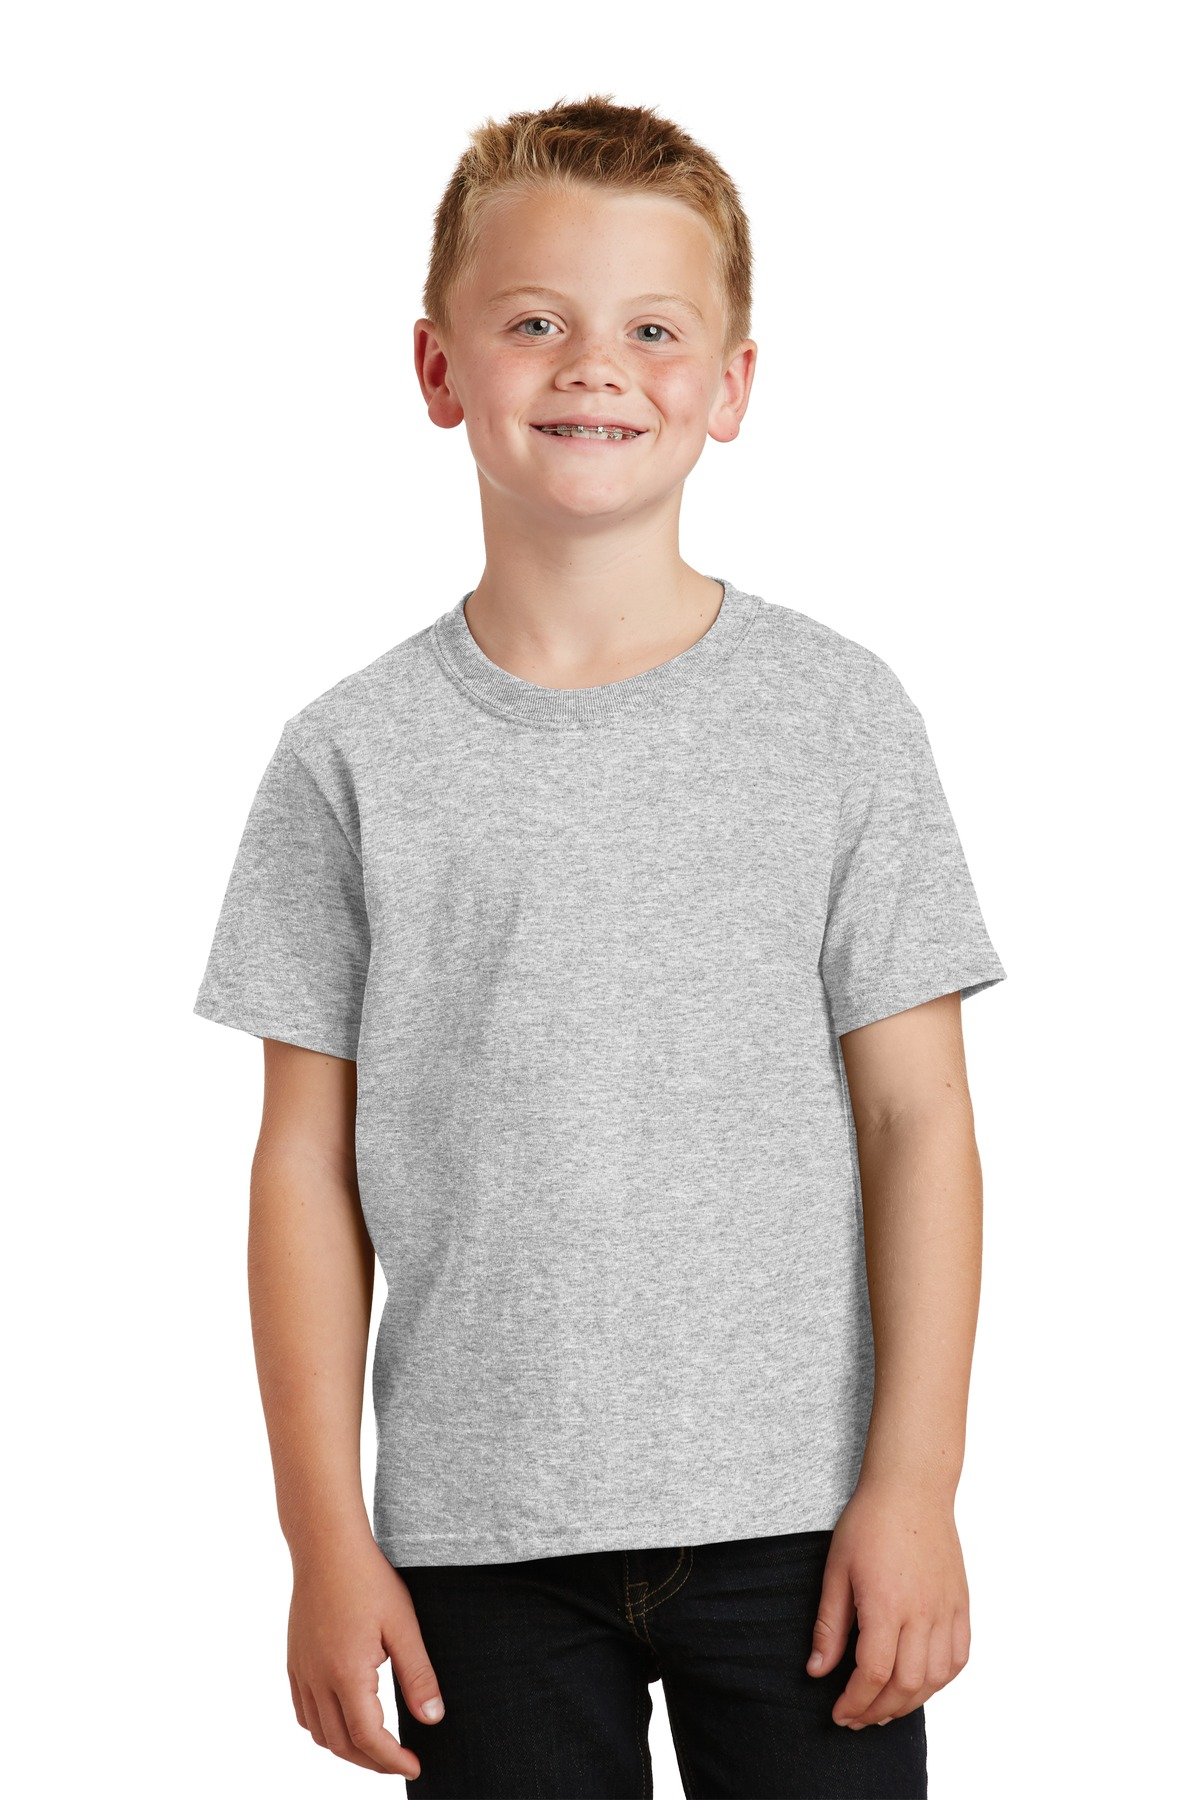 Port & Company ®  - Youth Core Cotton Tee. PC54Y - Ash*